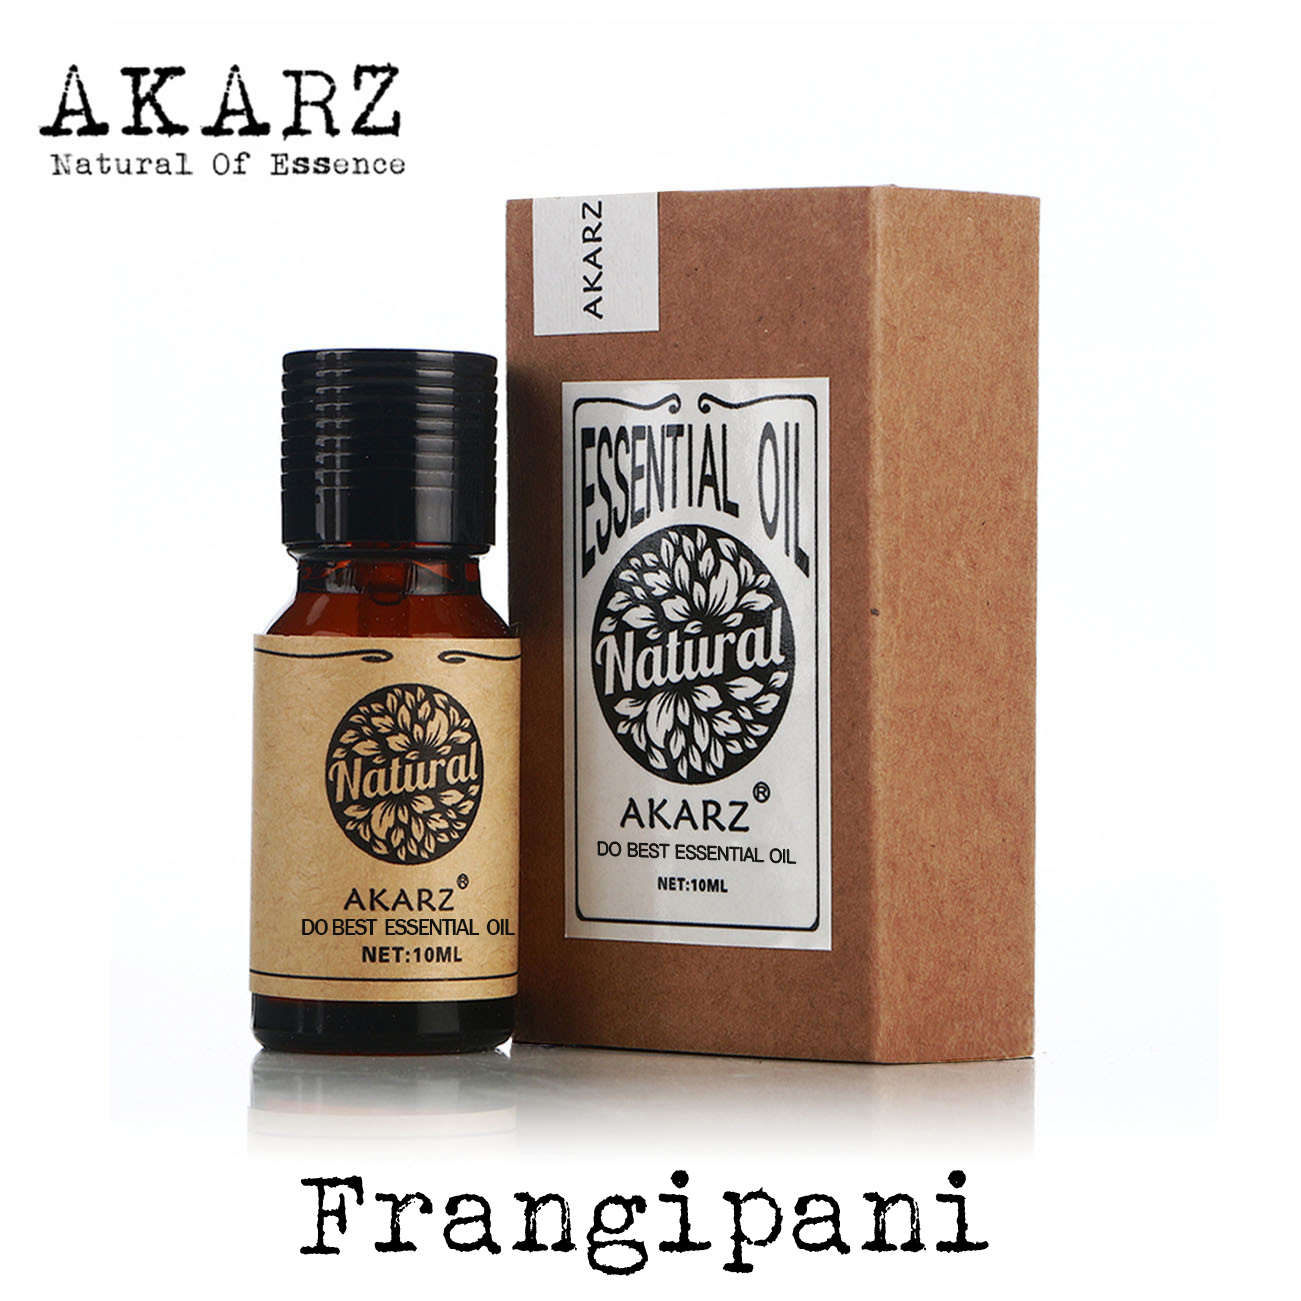 AKARZ Famous brand natural aromatherapy Frangipani oil Relax Releasing senses Prevent dry skin Frangipani Essential oilAKARZ Famous brand natural aromatherapy Frangipani oil Relax Releasing senses Prevent dry skin Frangipani Essential oil